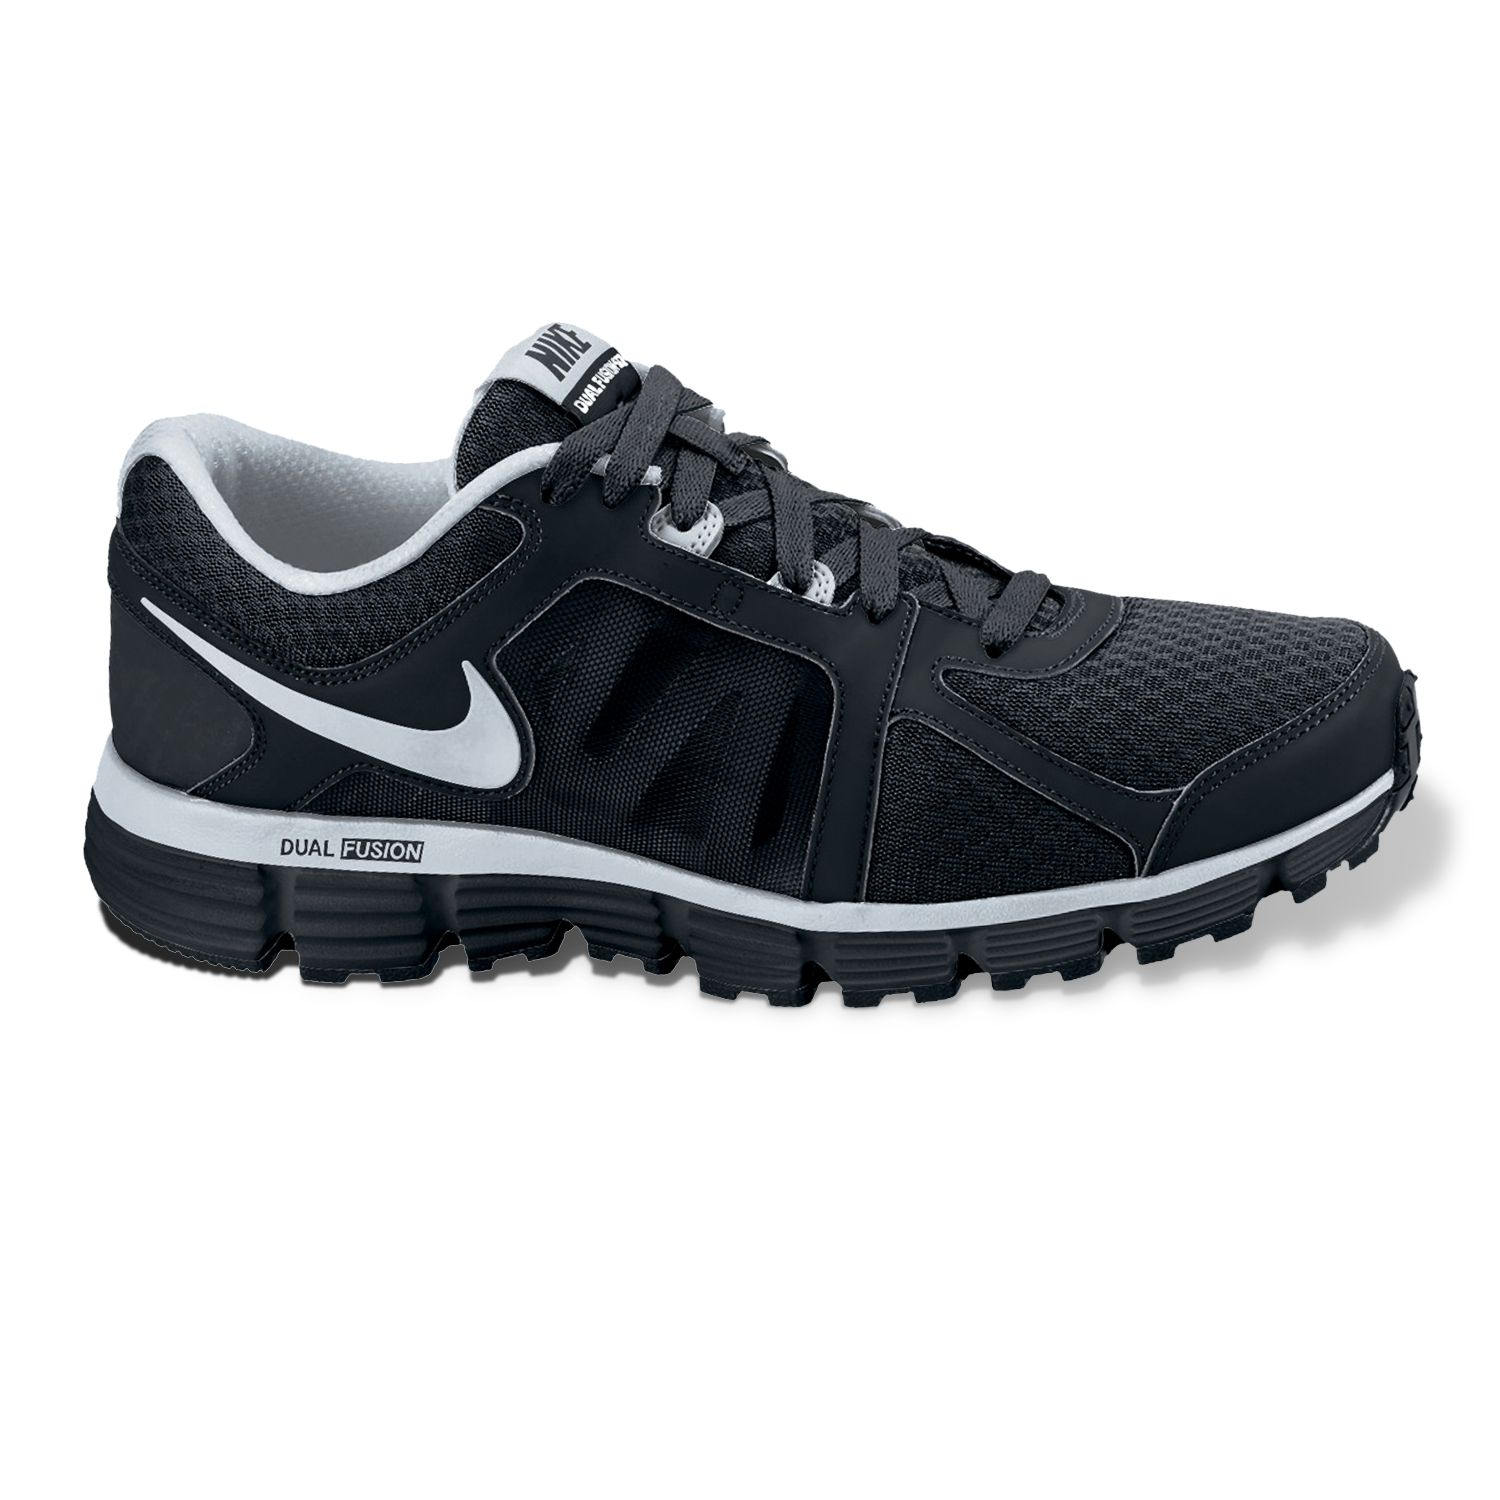 sports shoes 9ff45 8f94c nike fusion st 2 athletic shoes